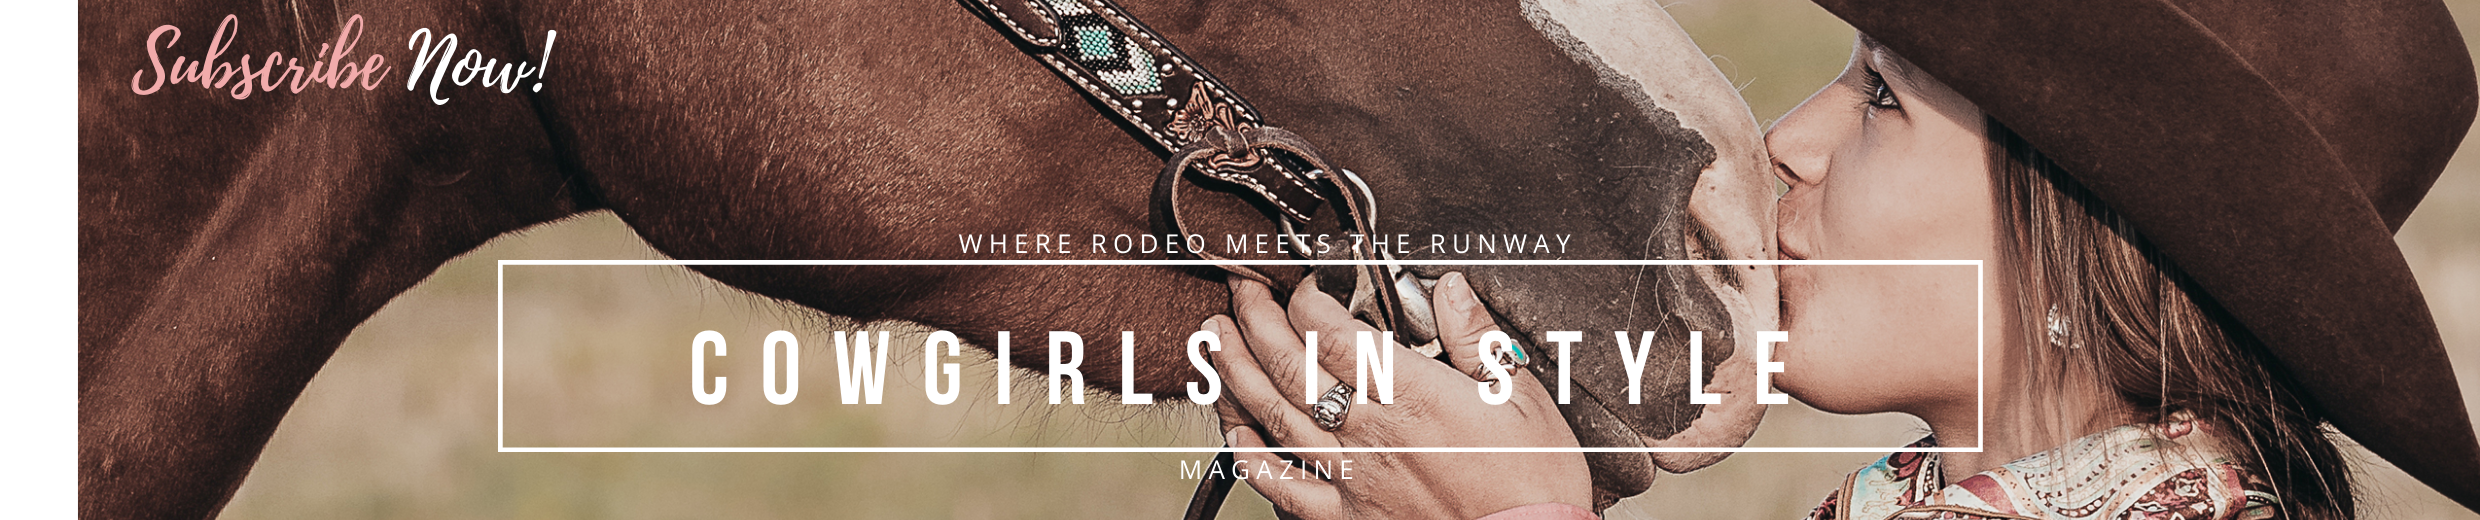 Cowgirls of Instagram - Stephanie Griffey - Cowgirls In Style Magazine